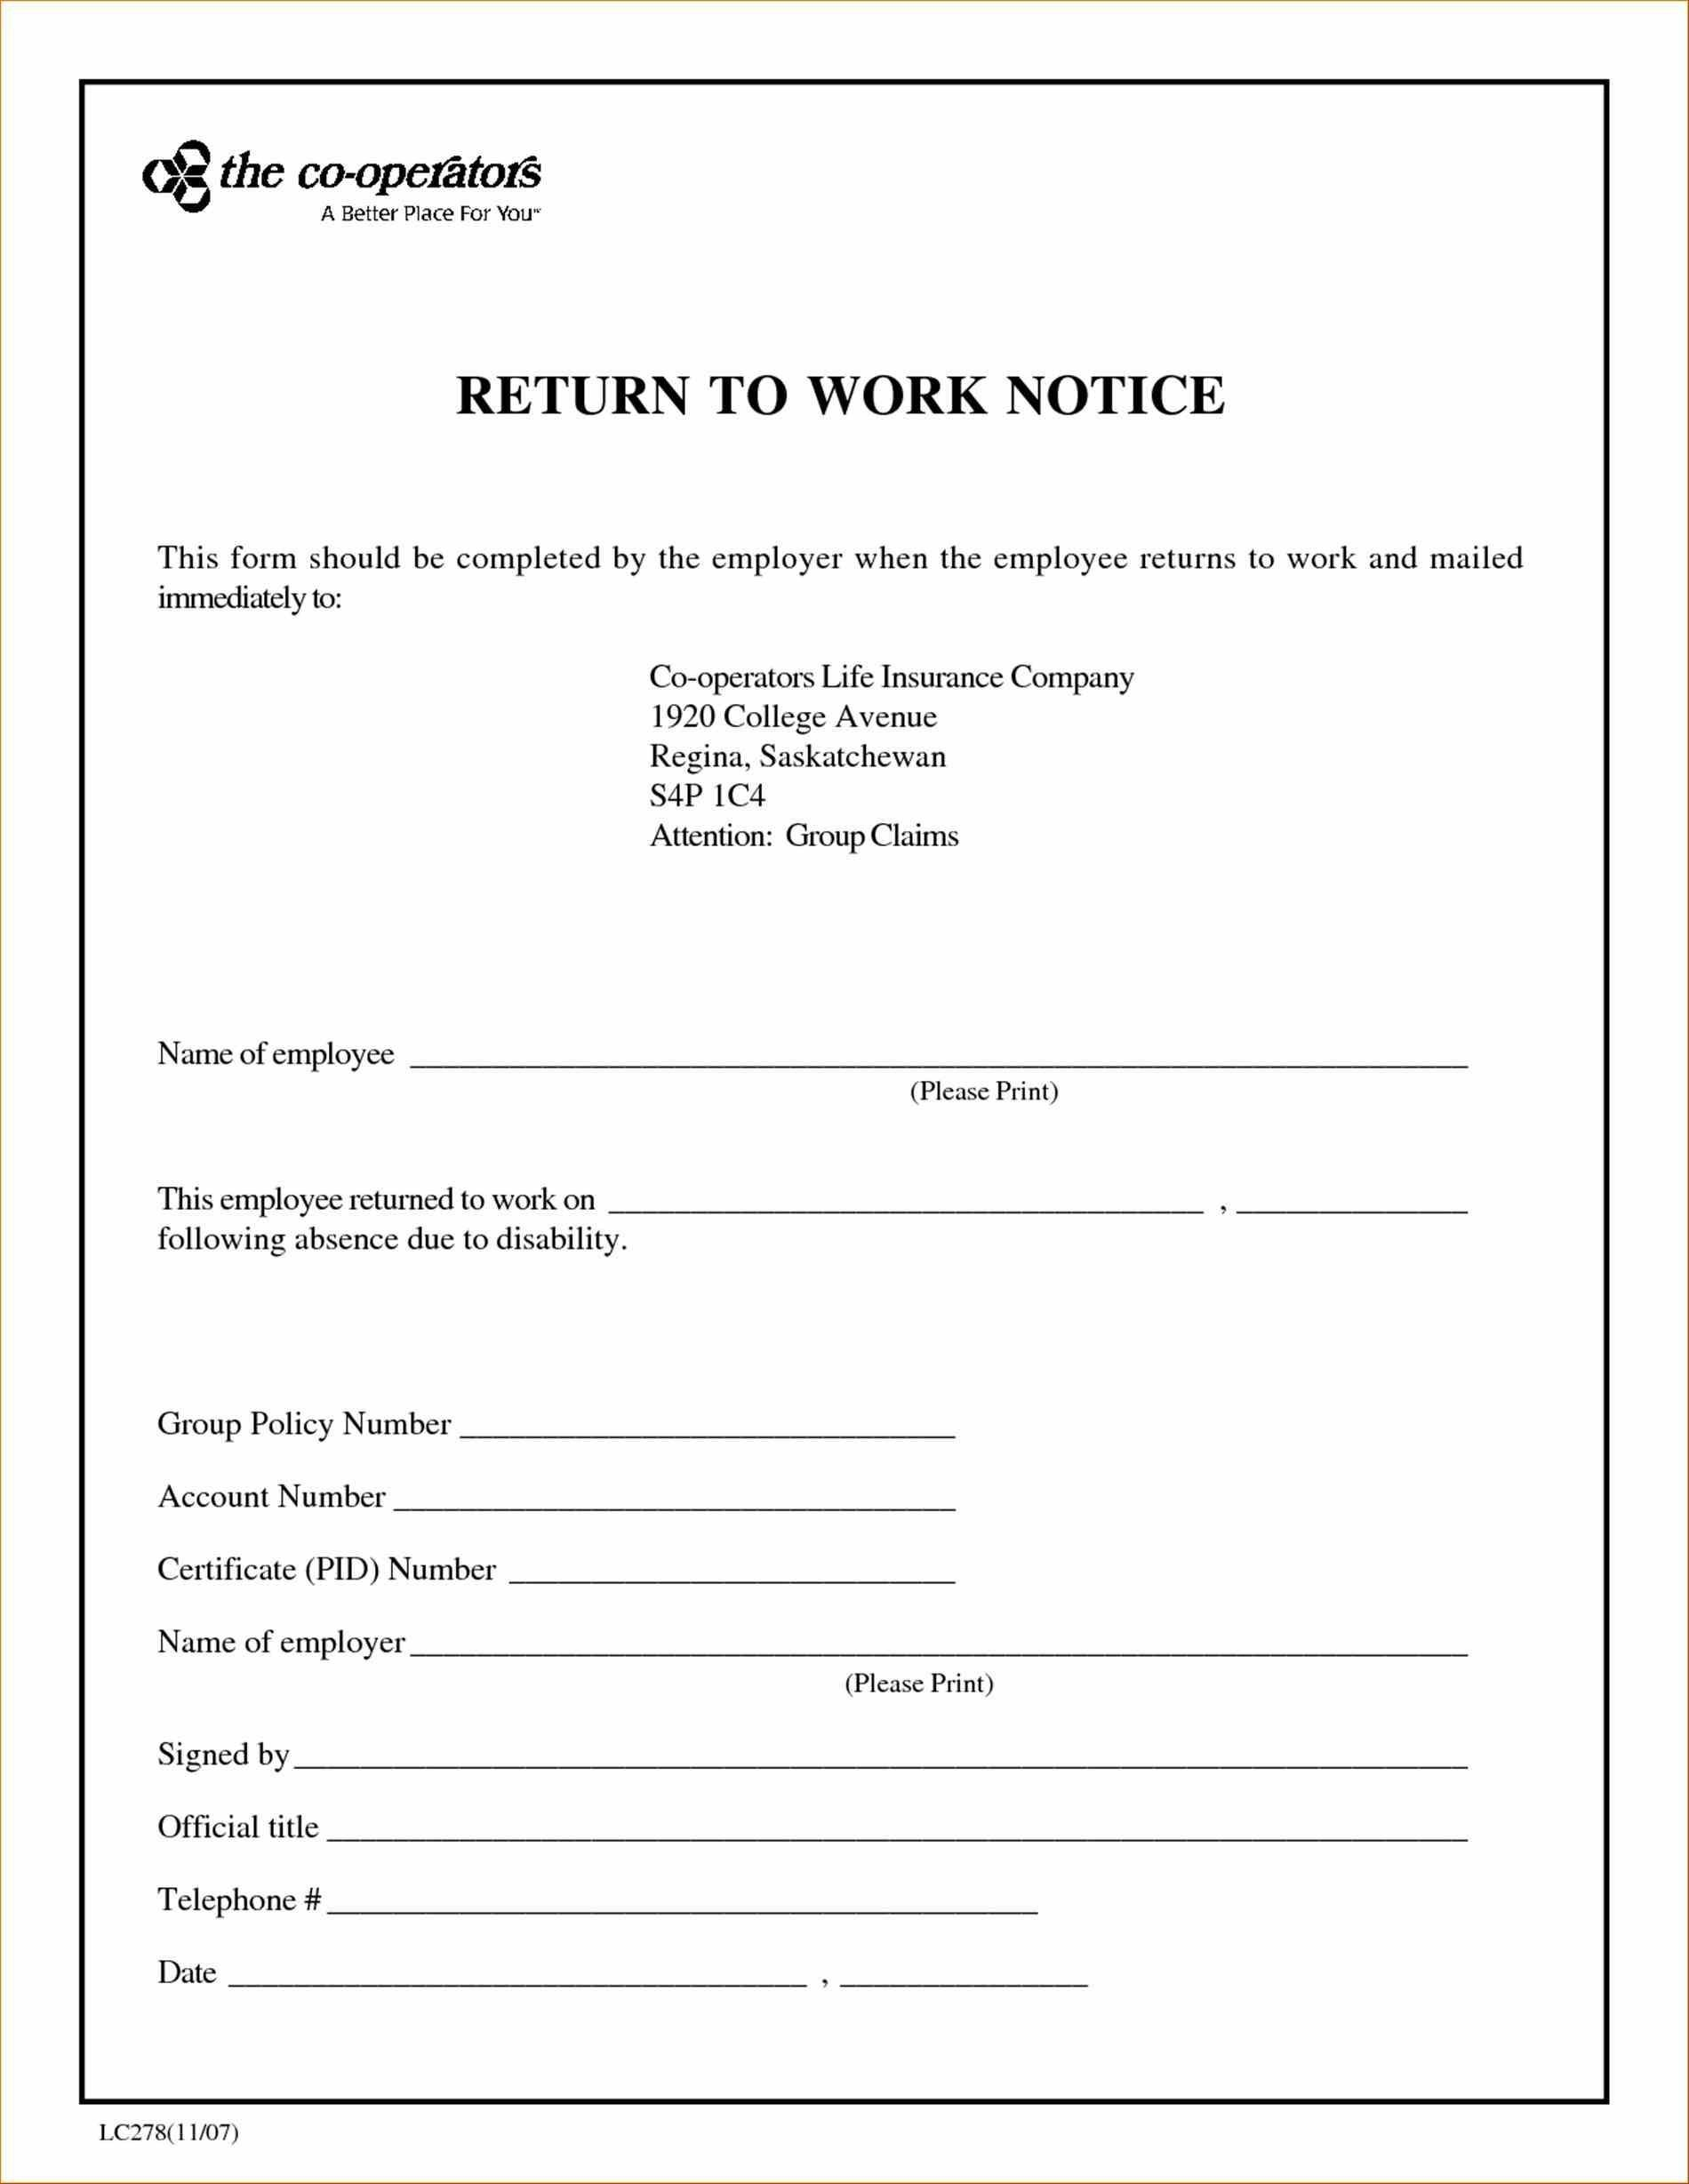 S Doctor Notes Templates Note Templates Onlinestopwatchcom Pin - Free Printable Doctors Notes Templates